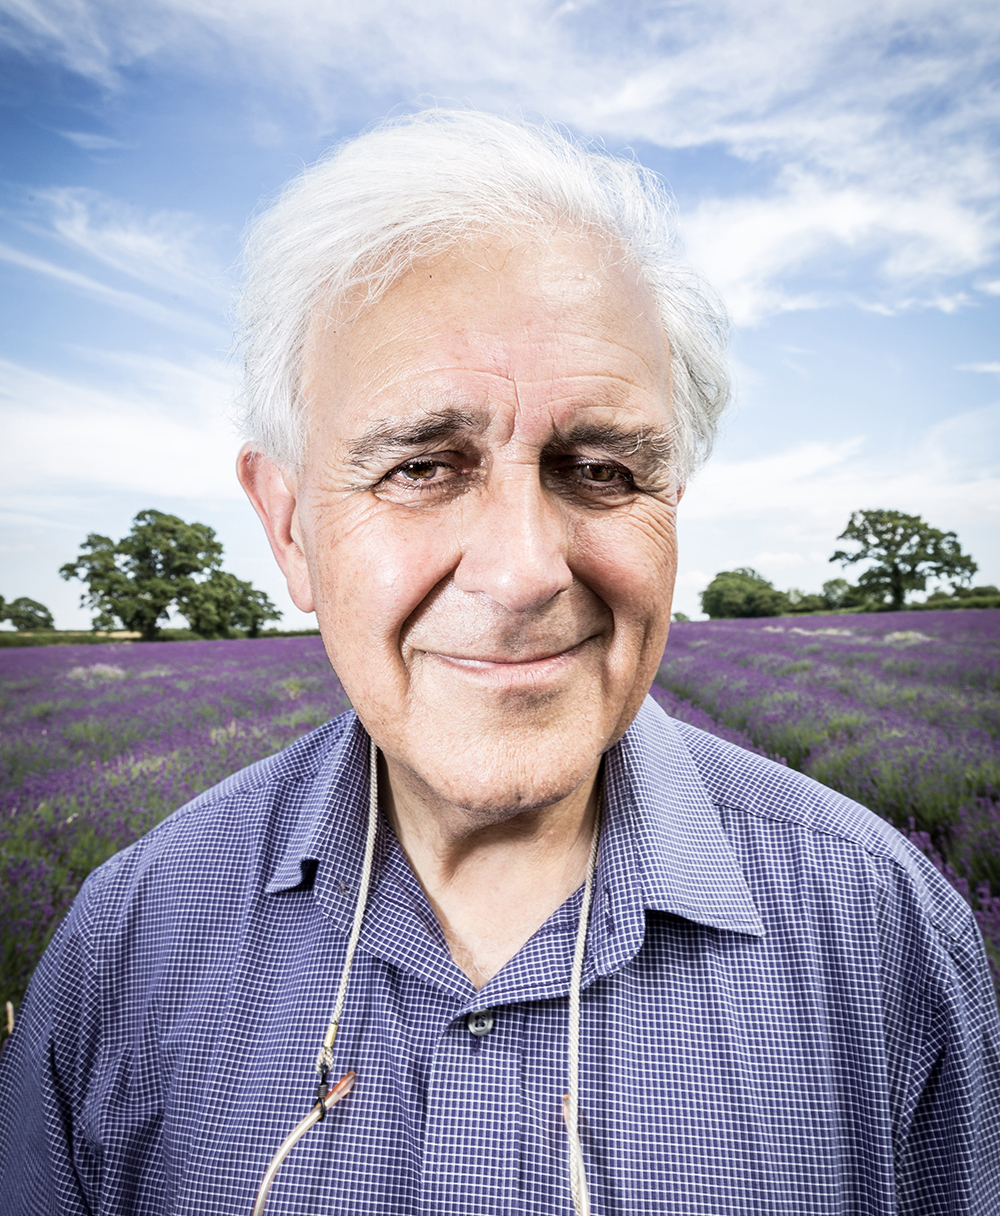 Close up image of man with field of Lavender as background.